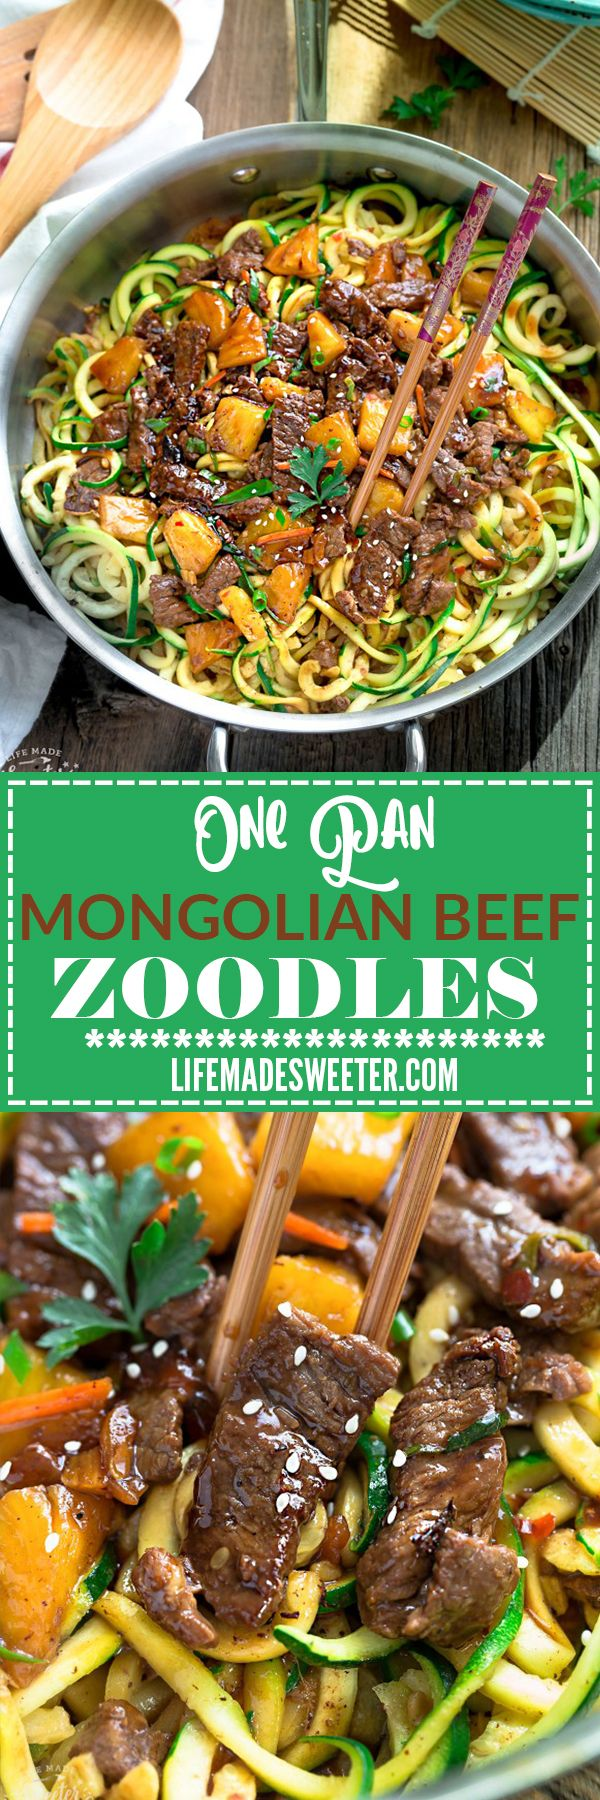 One Pan Mongolian Beef Zoodles (Zucchini Noodles) make the perfect easy grain free, low carb weeknight meal! Best of all, it comes together in under 30 minutes with just one pot to clean! So much better and healthier than takeout!!